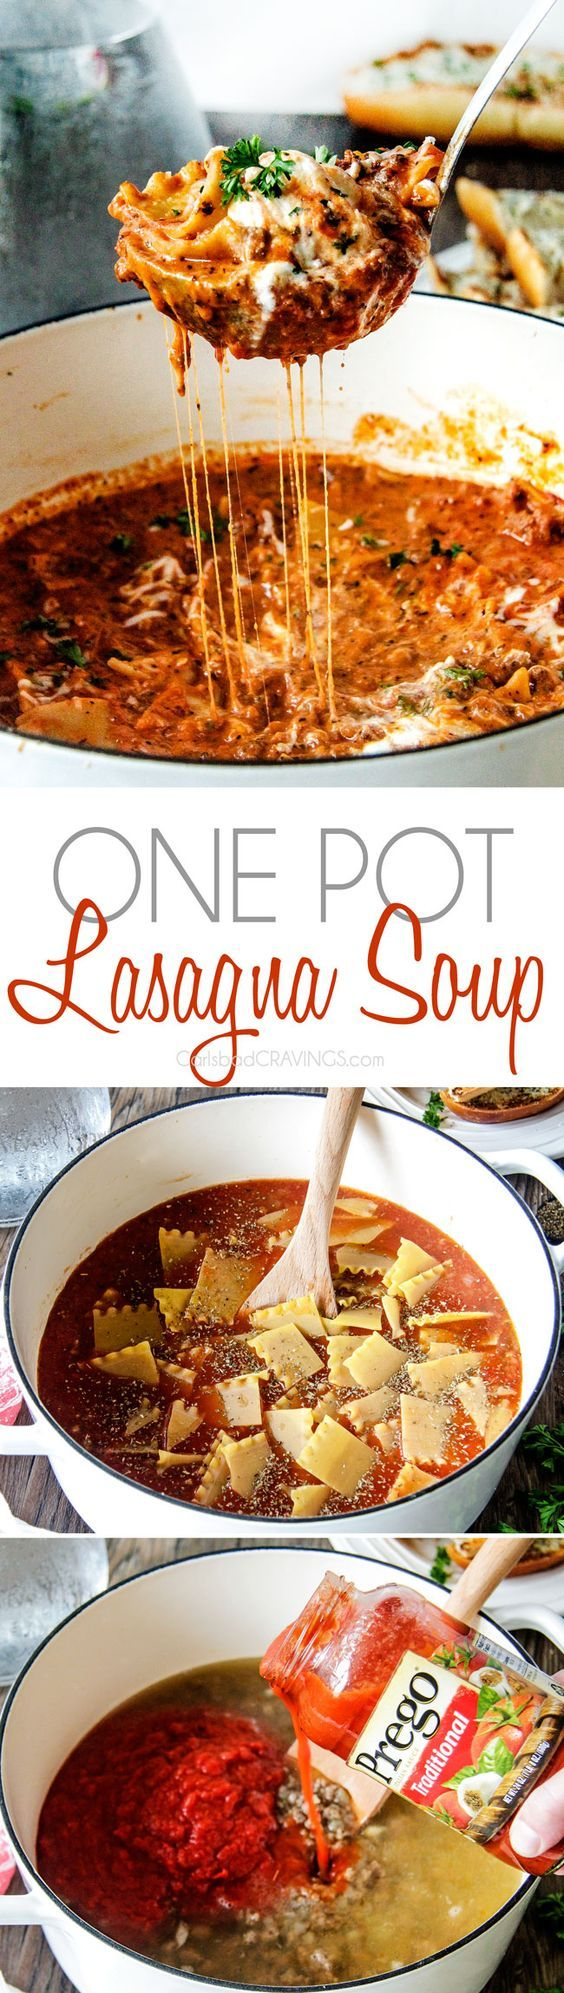 One Pot Lasagna Soup Recipe plus 24 more of the most pinned one pot meals